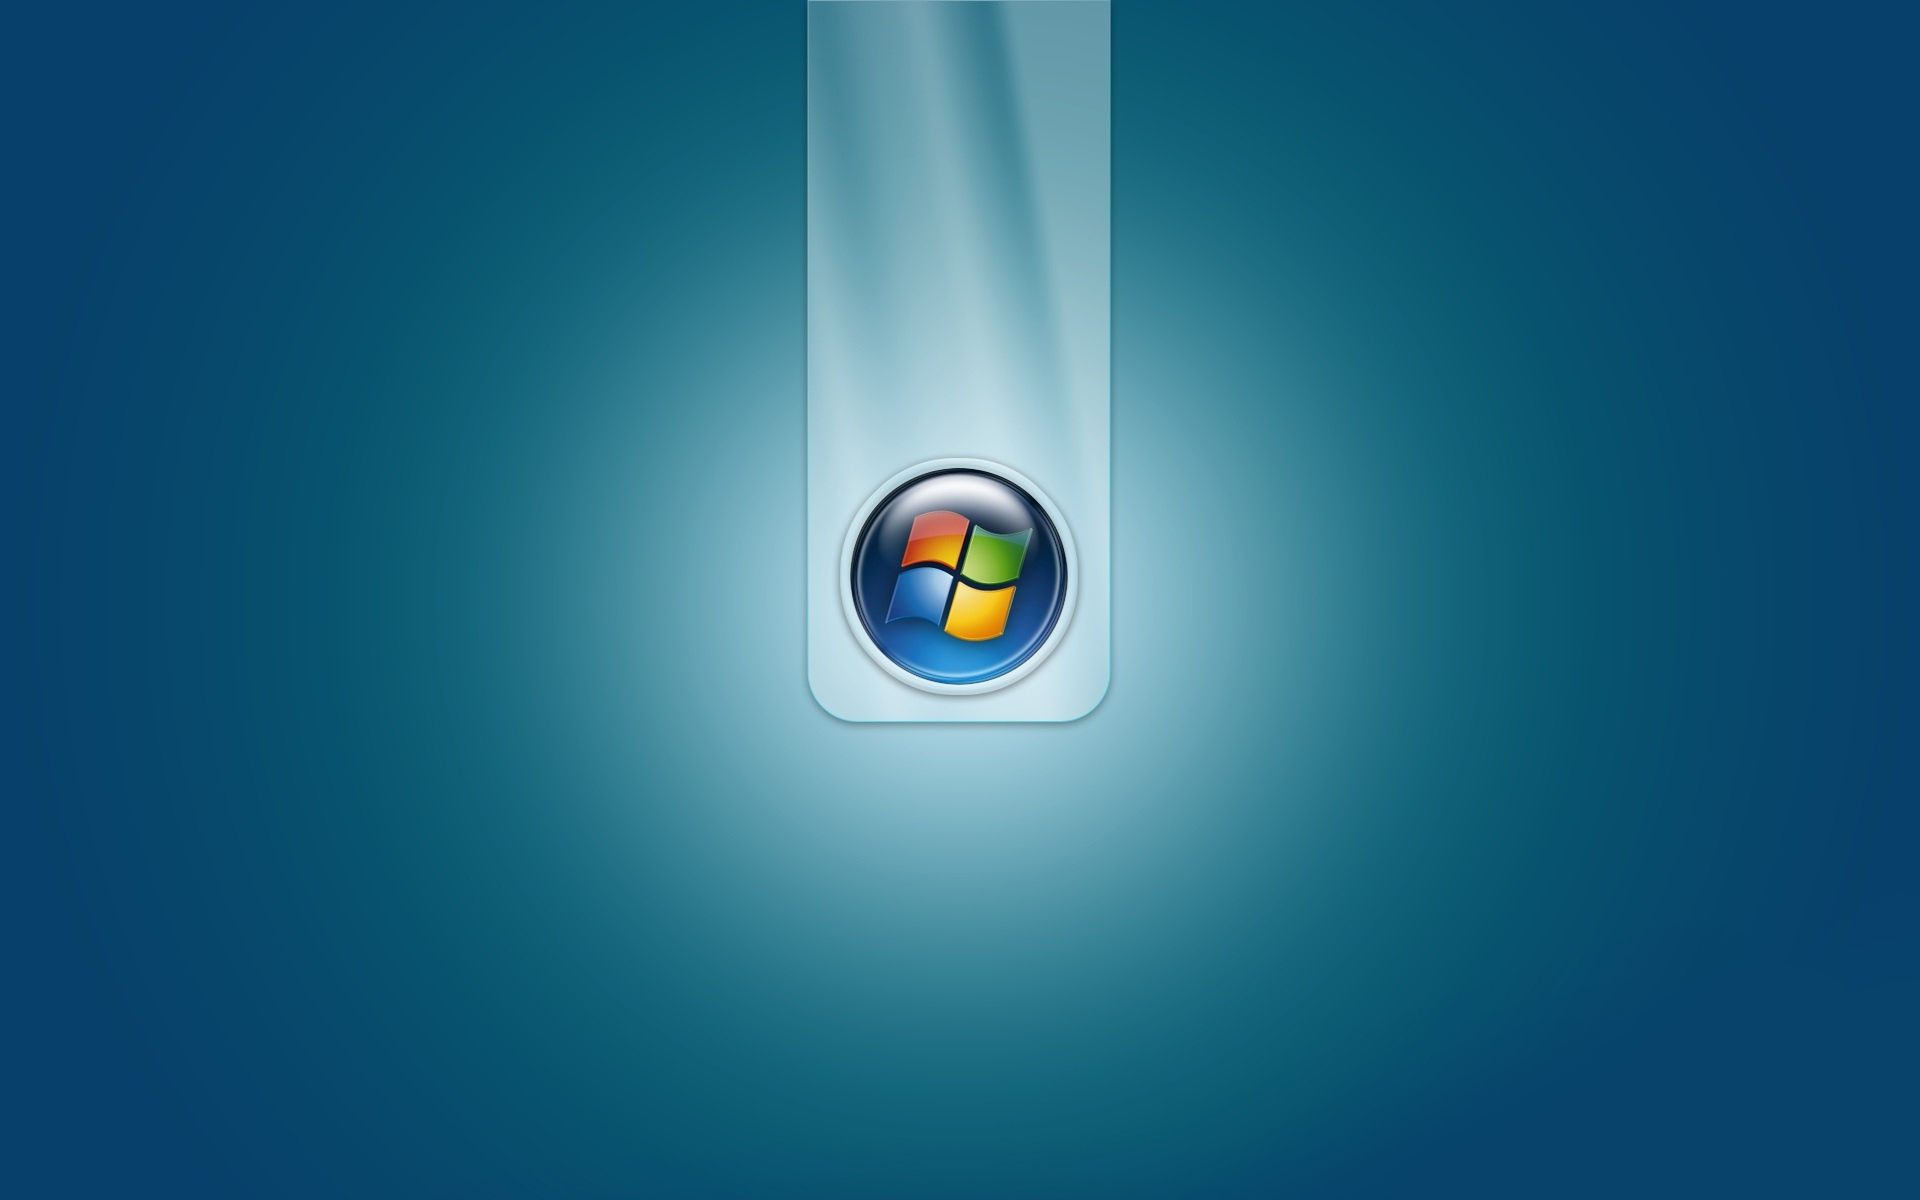 Windows 7 Blue Logo White Yellow Wallpaper Background 1920x1200 1920x1200